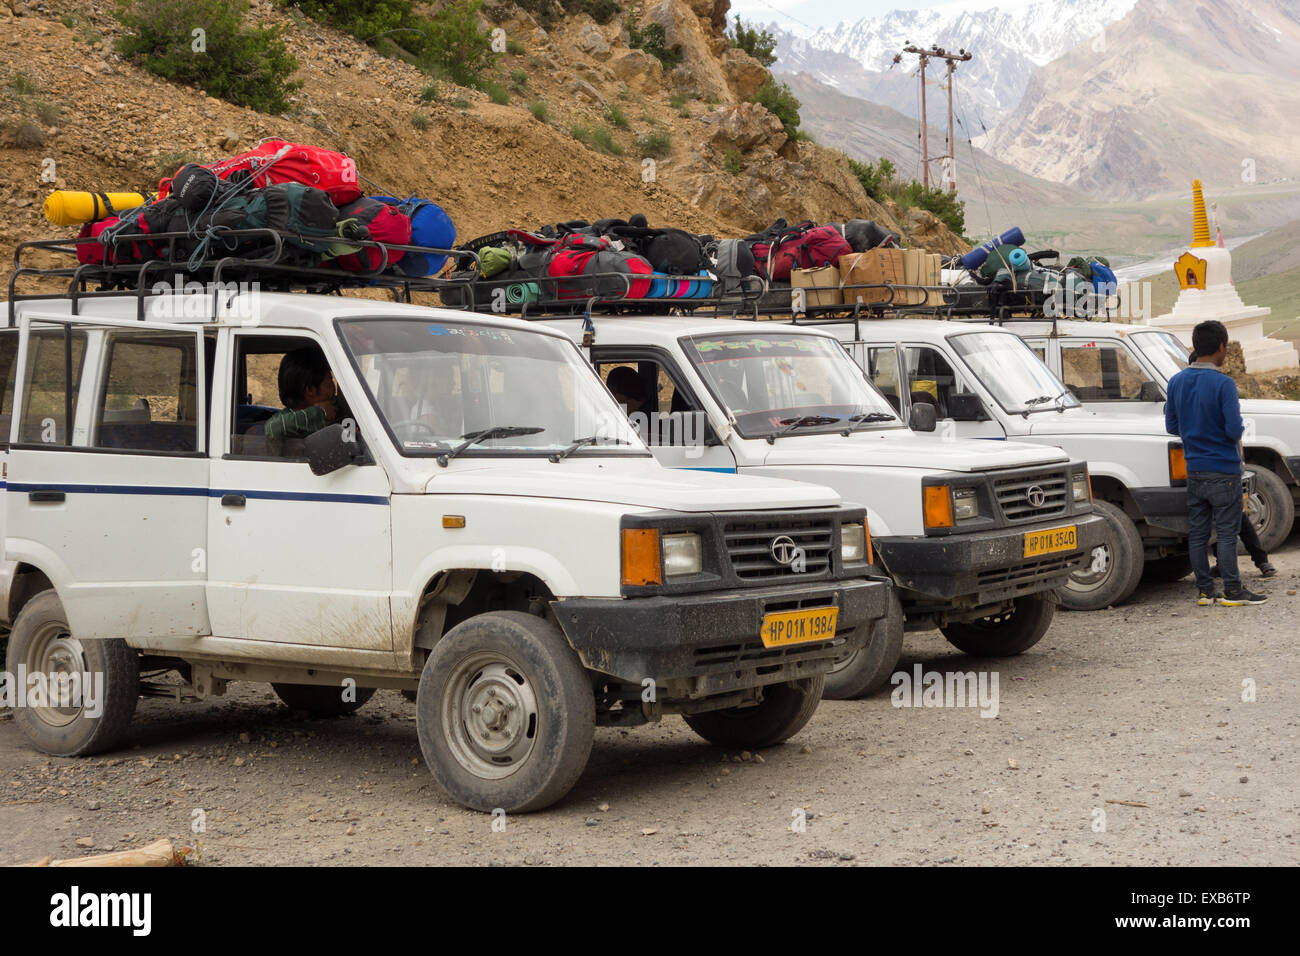 Spiti Vallley, Himachal Pradesh - line of Tata 4x4 vehicles loaded with eco tourist luggage and camping equipment - Stock Image